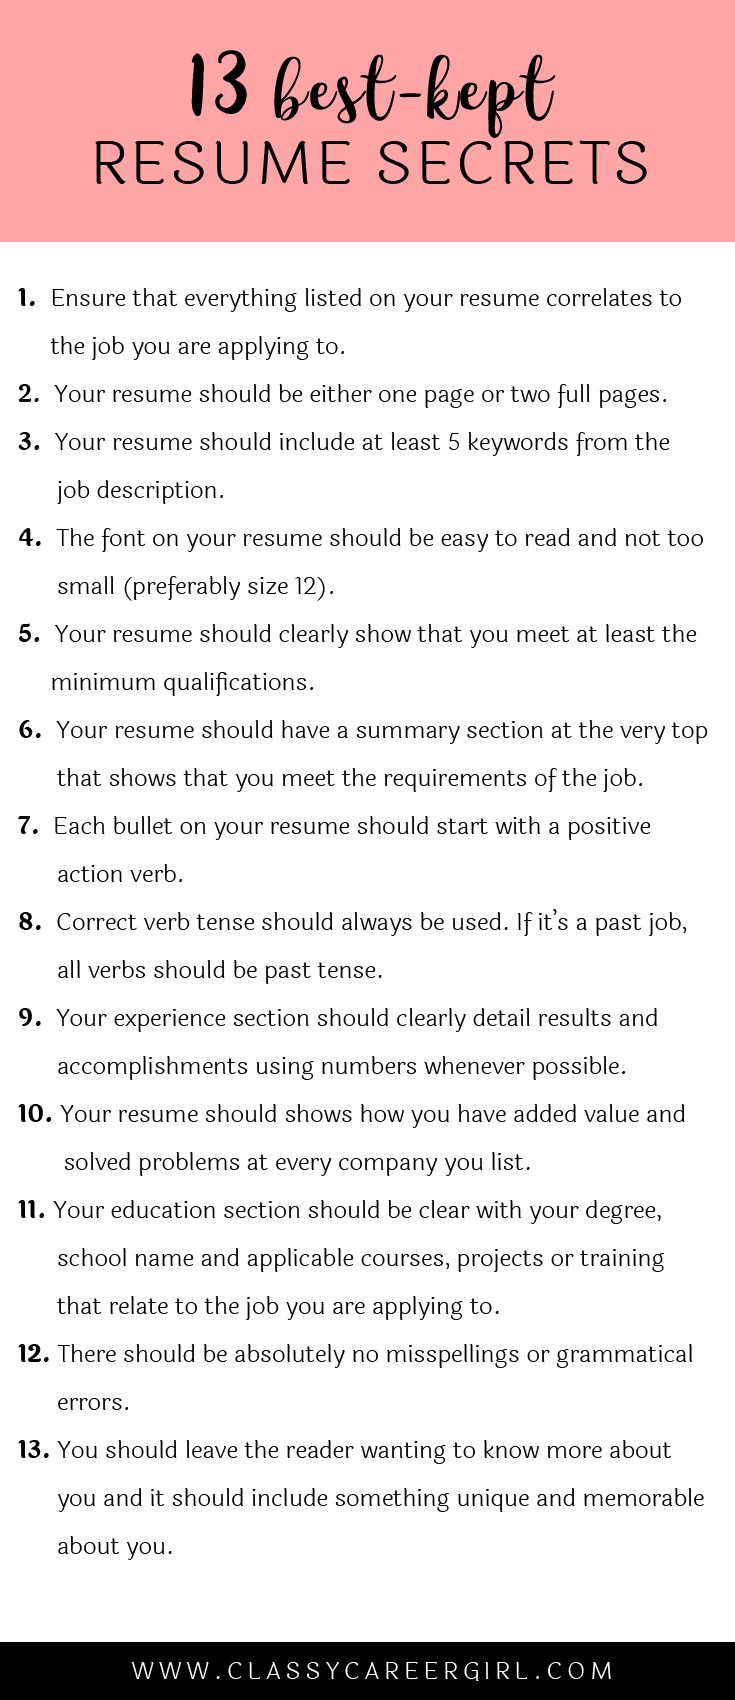 Picnictoimpeachus  Inspiring  Ideas About Resume On Pinterest  Cv Format Resume Cv And  With Luxury Some Hiring Managers Will Toss Your Resume Out If You Dont Know These  With Easy On The Eye Resume In Word Format Also First Resume Sample In Addition Resume For Home Health Aide And Template Resume Word As Well As Resume For Waiter Additionally Resume For A Bank Teller From Pinterestcom With Picnictoimpeachus  Luxury  Ideas About Resume On Pinterest  Cv Format Resume Cv And  With Easy On The Eye Some Hiring Managers Will Toss Your Resume Out If You Dont Know These  And Inspiring Resume In Word Format Also First Resume Sample In Addition Resume For Home Health Aide From Pinterestcom